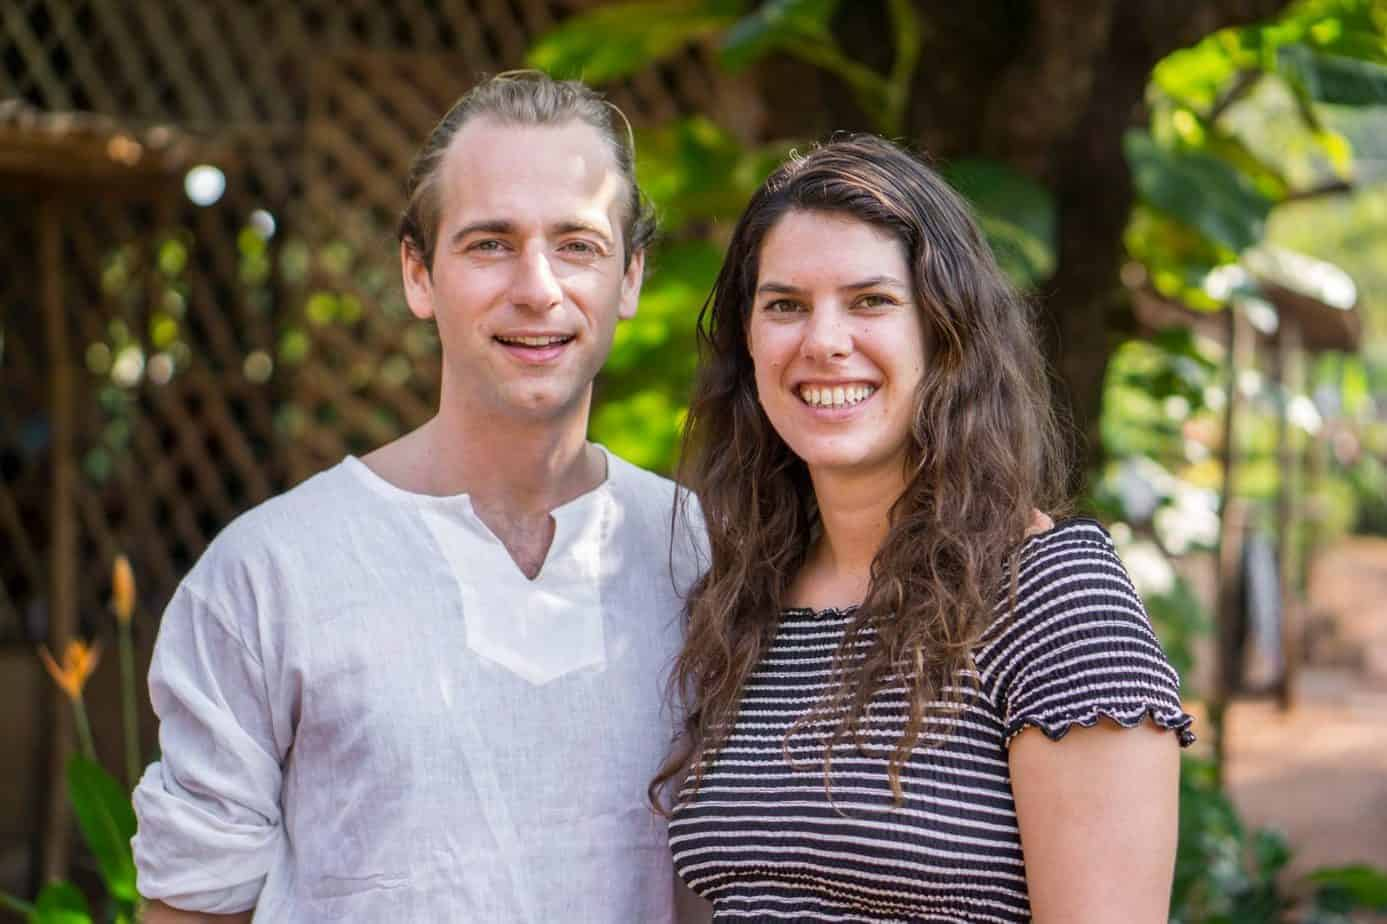 Paul and Merel, Meditation Teacher Trainers at the Institute of Meditation